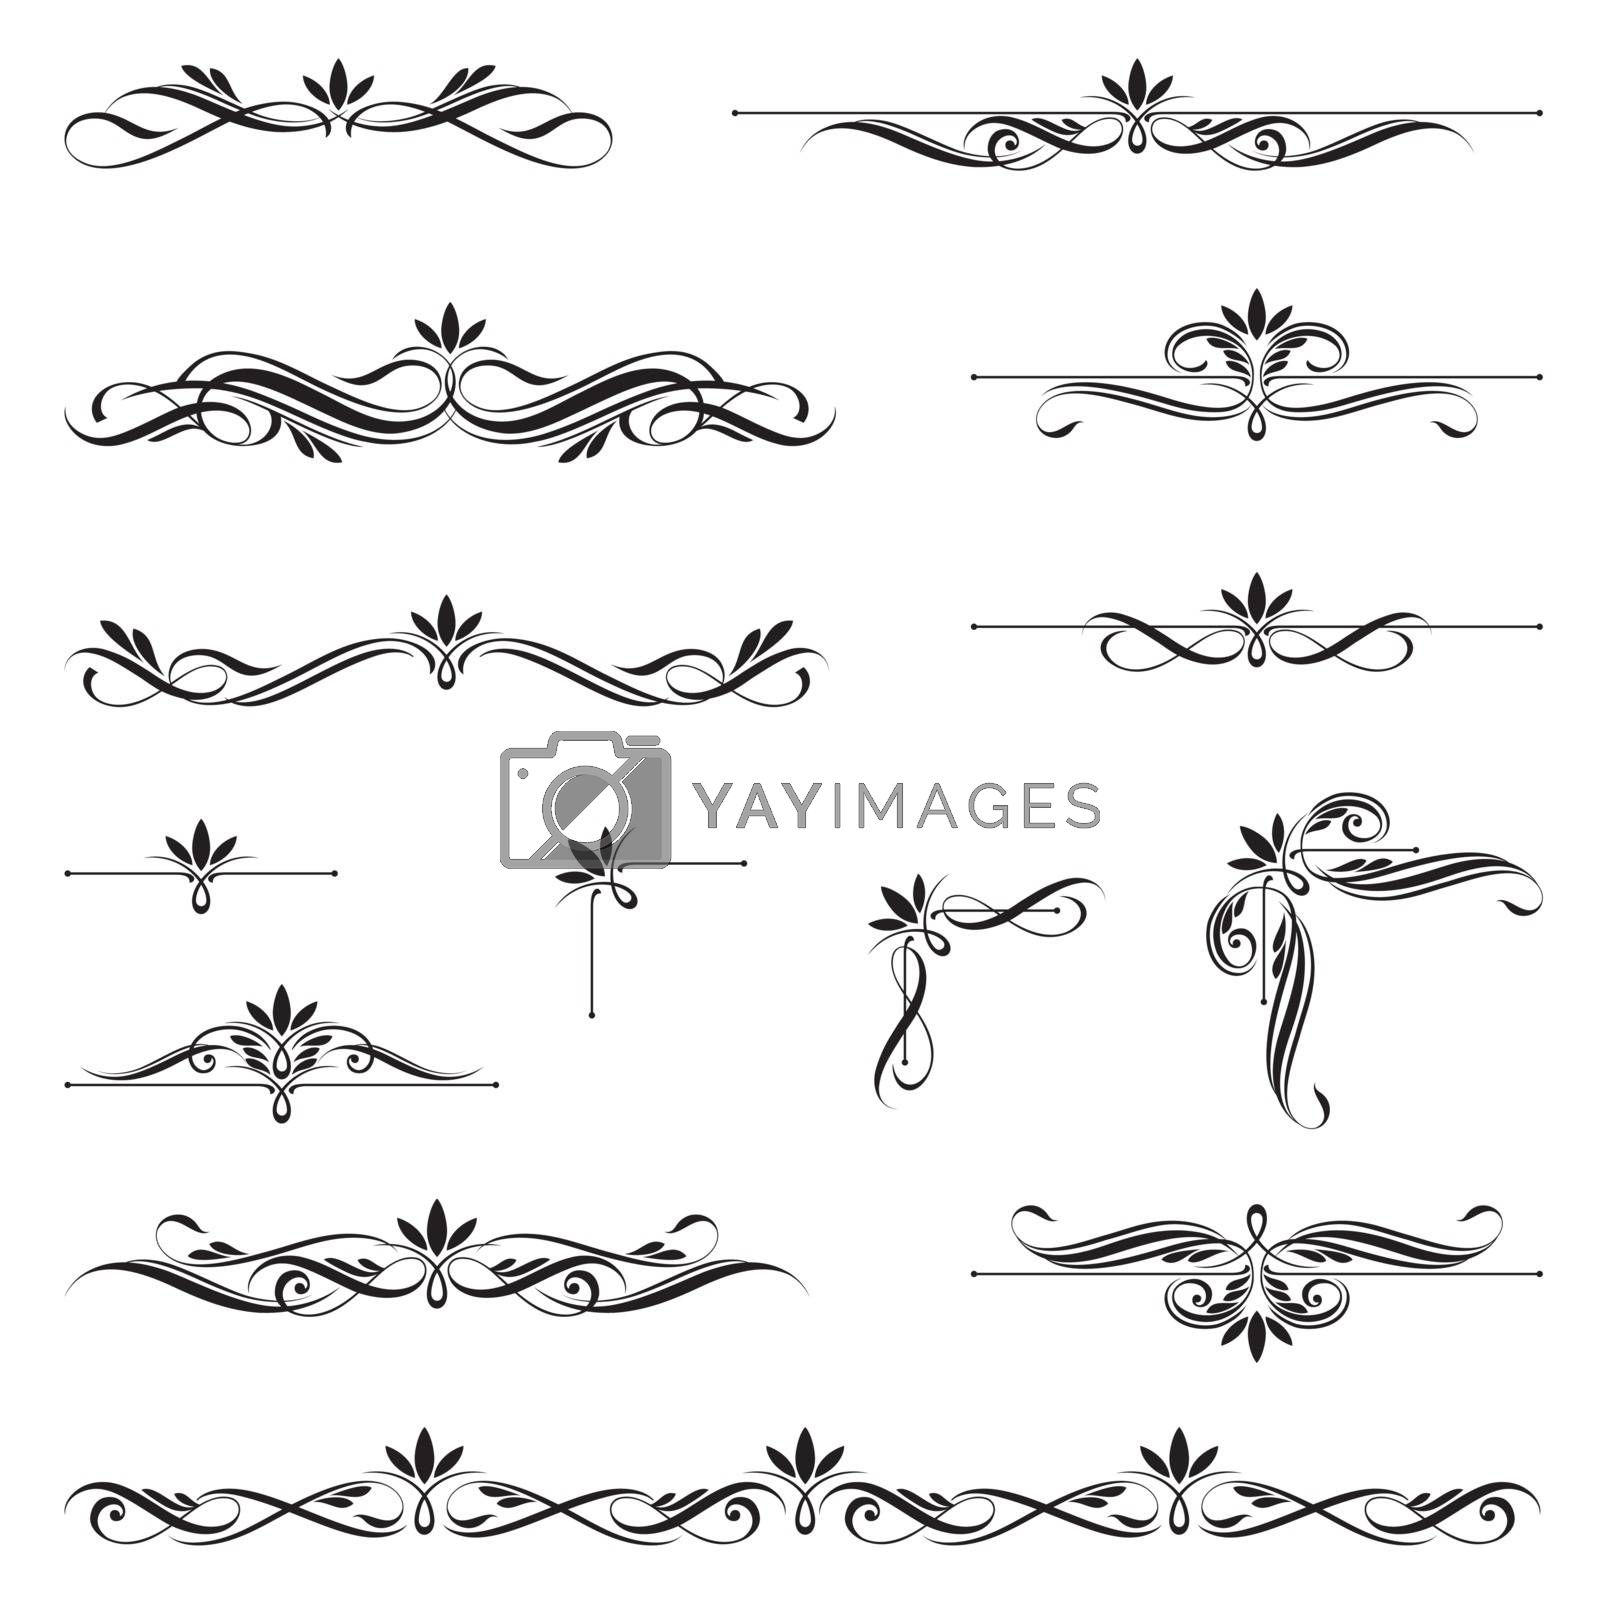 Set of Calligraphic Elements. This image is a vector illustration.